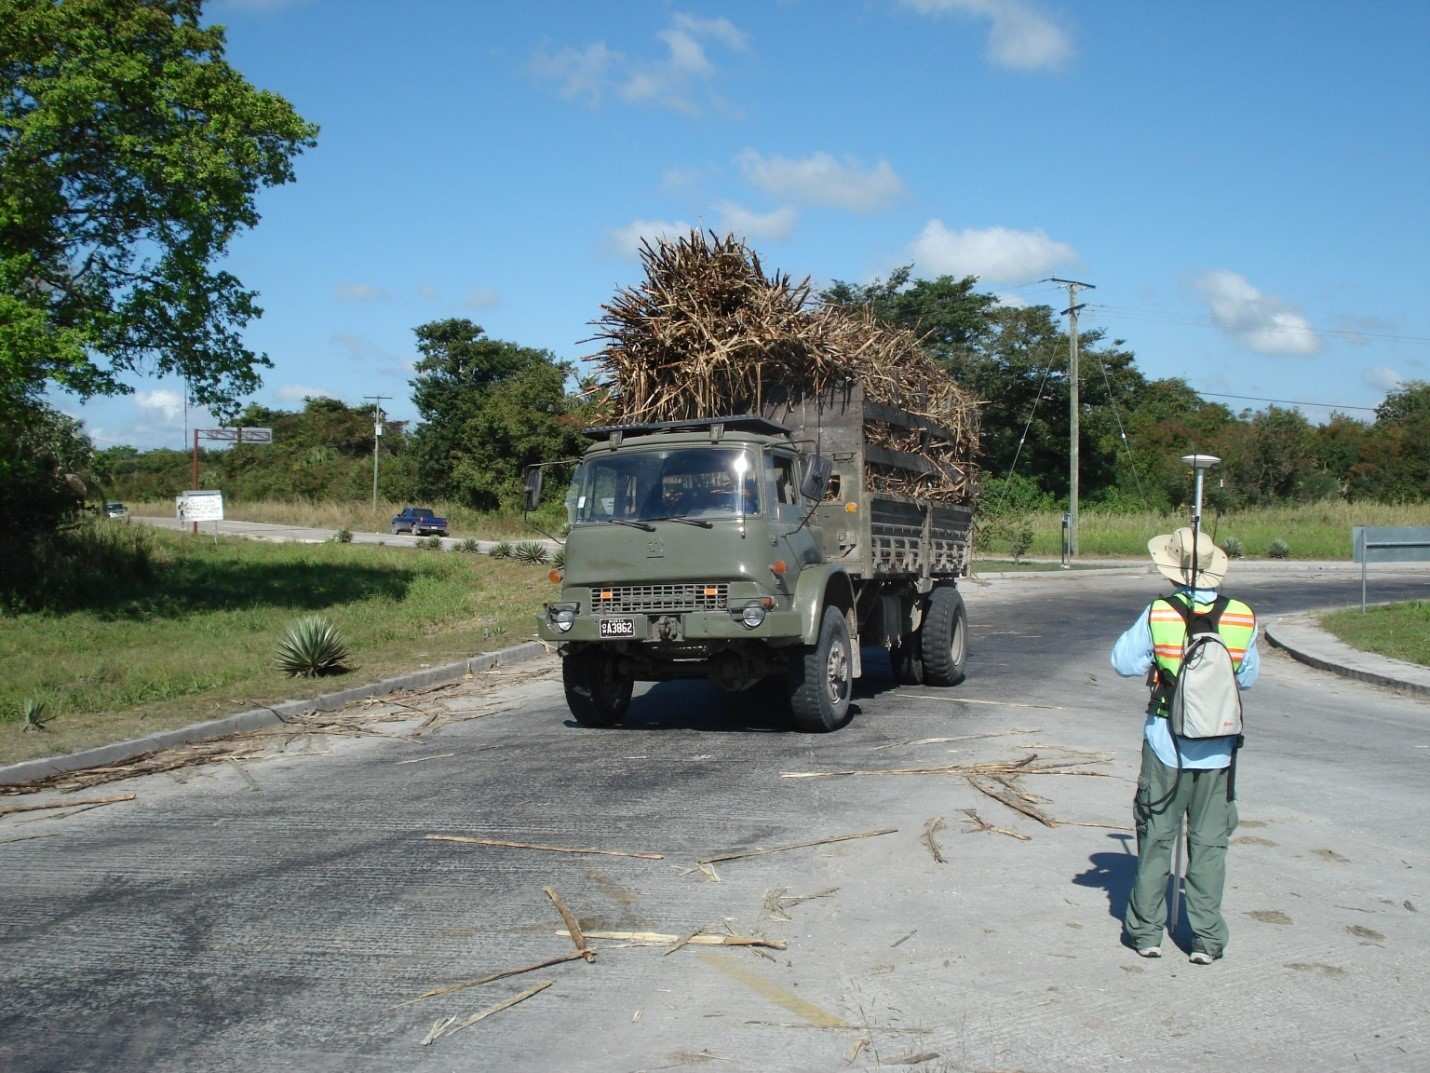 Institutional Strengthening Study for Management and Maintenance of Public Roads in Belize